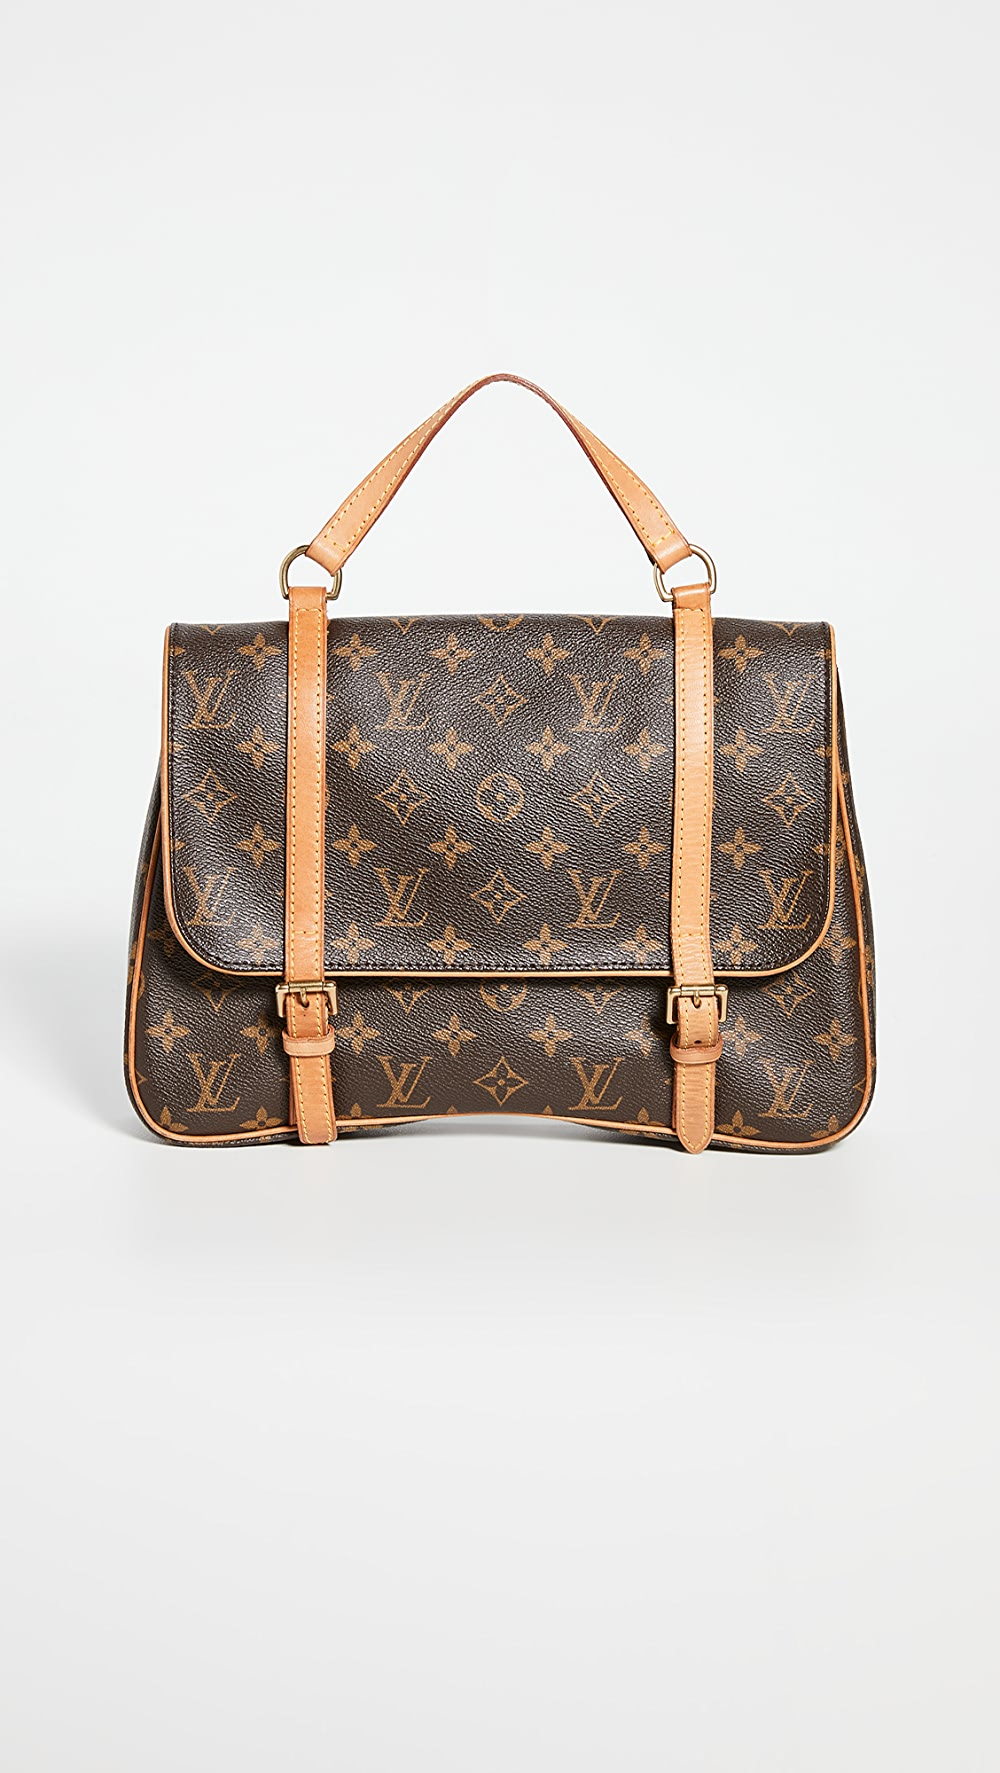 2019 Latest Design What Goes Around Comes Around - Lv Monogram Marelle Sac Activating Blood Circulation And Strengthening Sinews And Bones